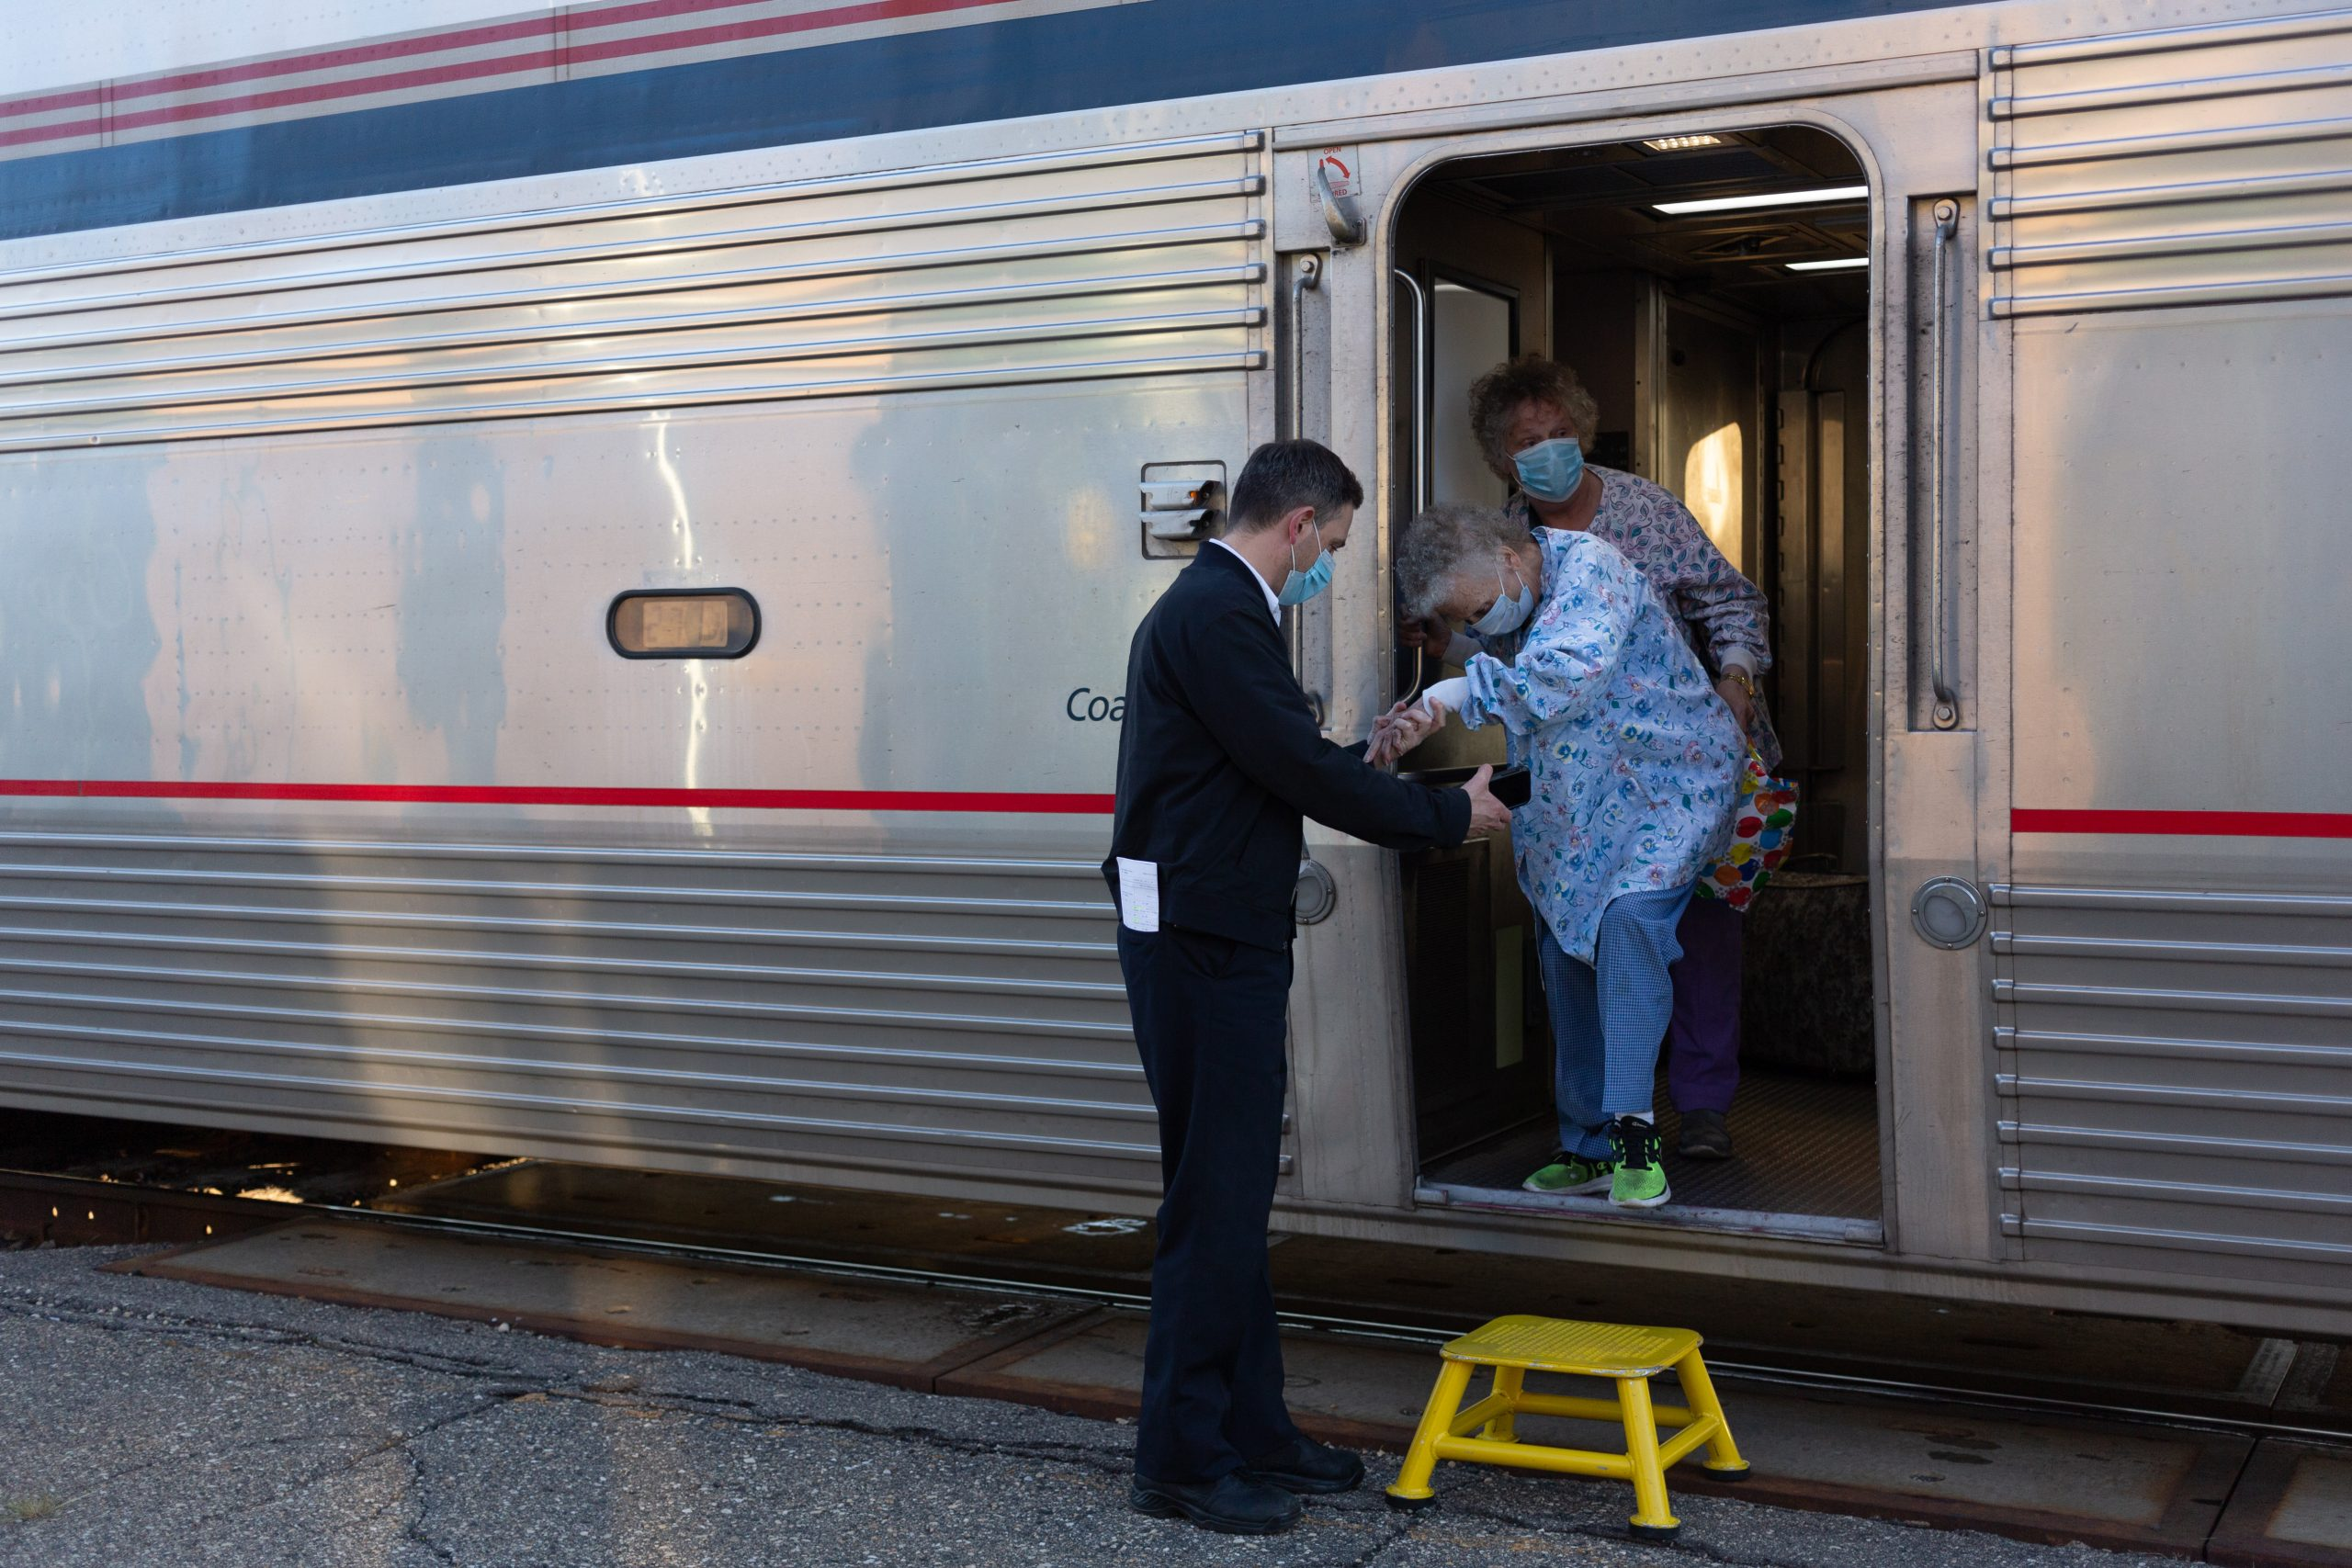 COVID-19 reduces Amtrak service here, in another blow to the future of passenger rail